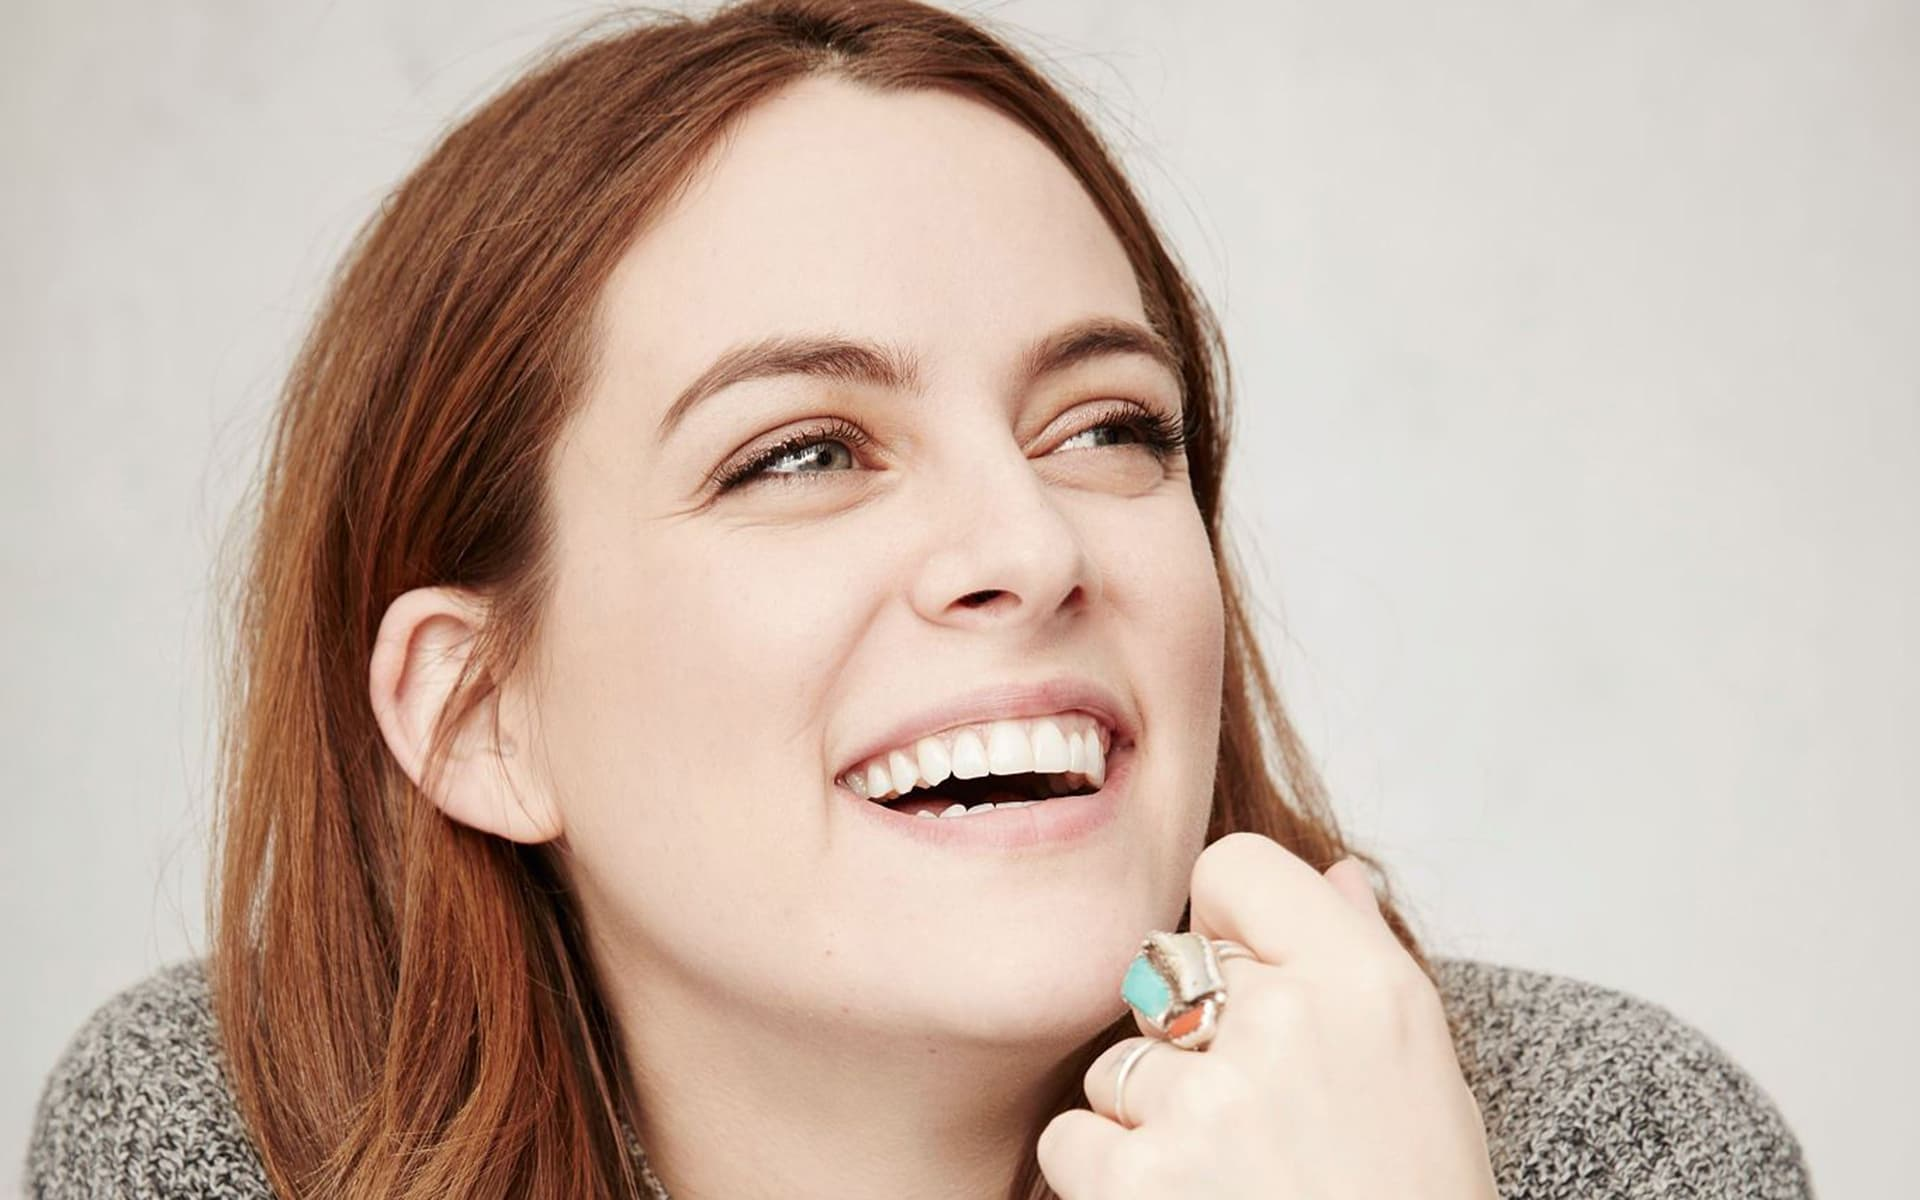 10 Riley Keough Wallpapers High Quality Resolution Download